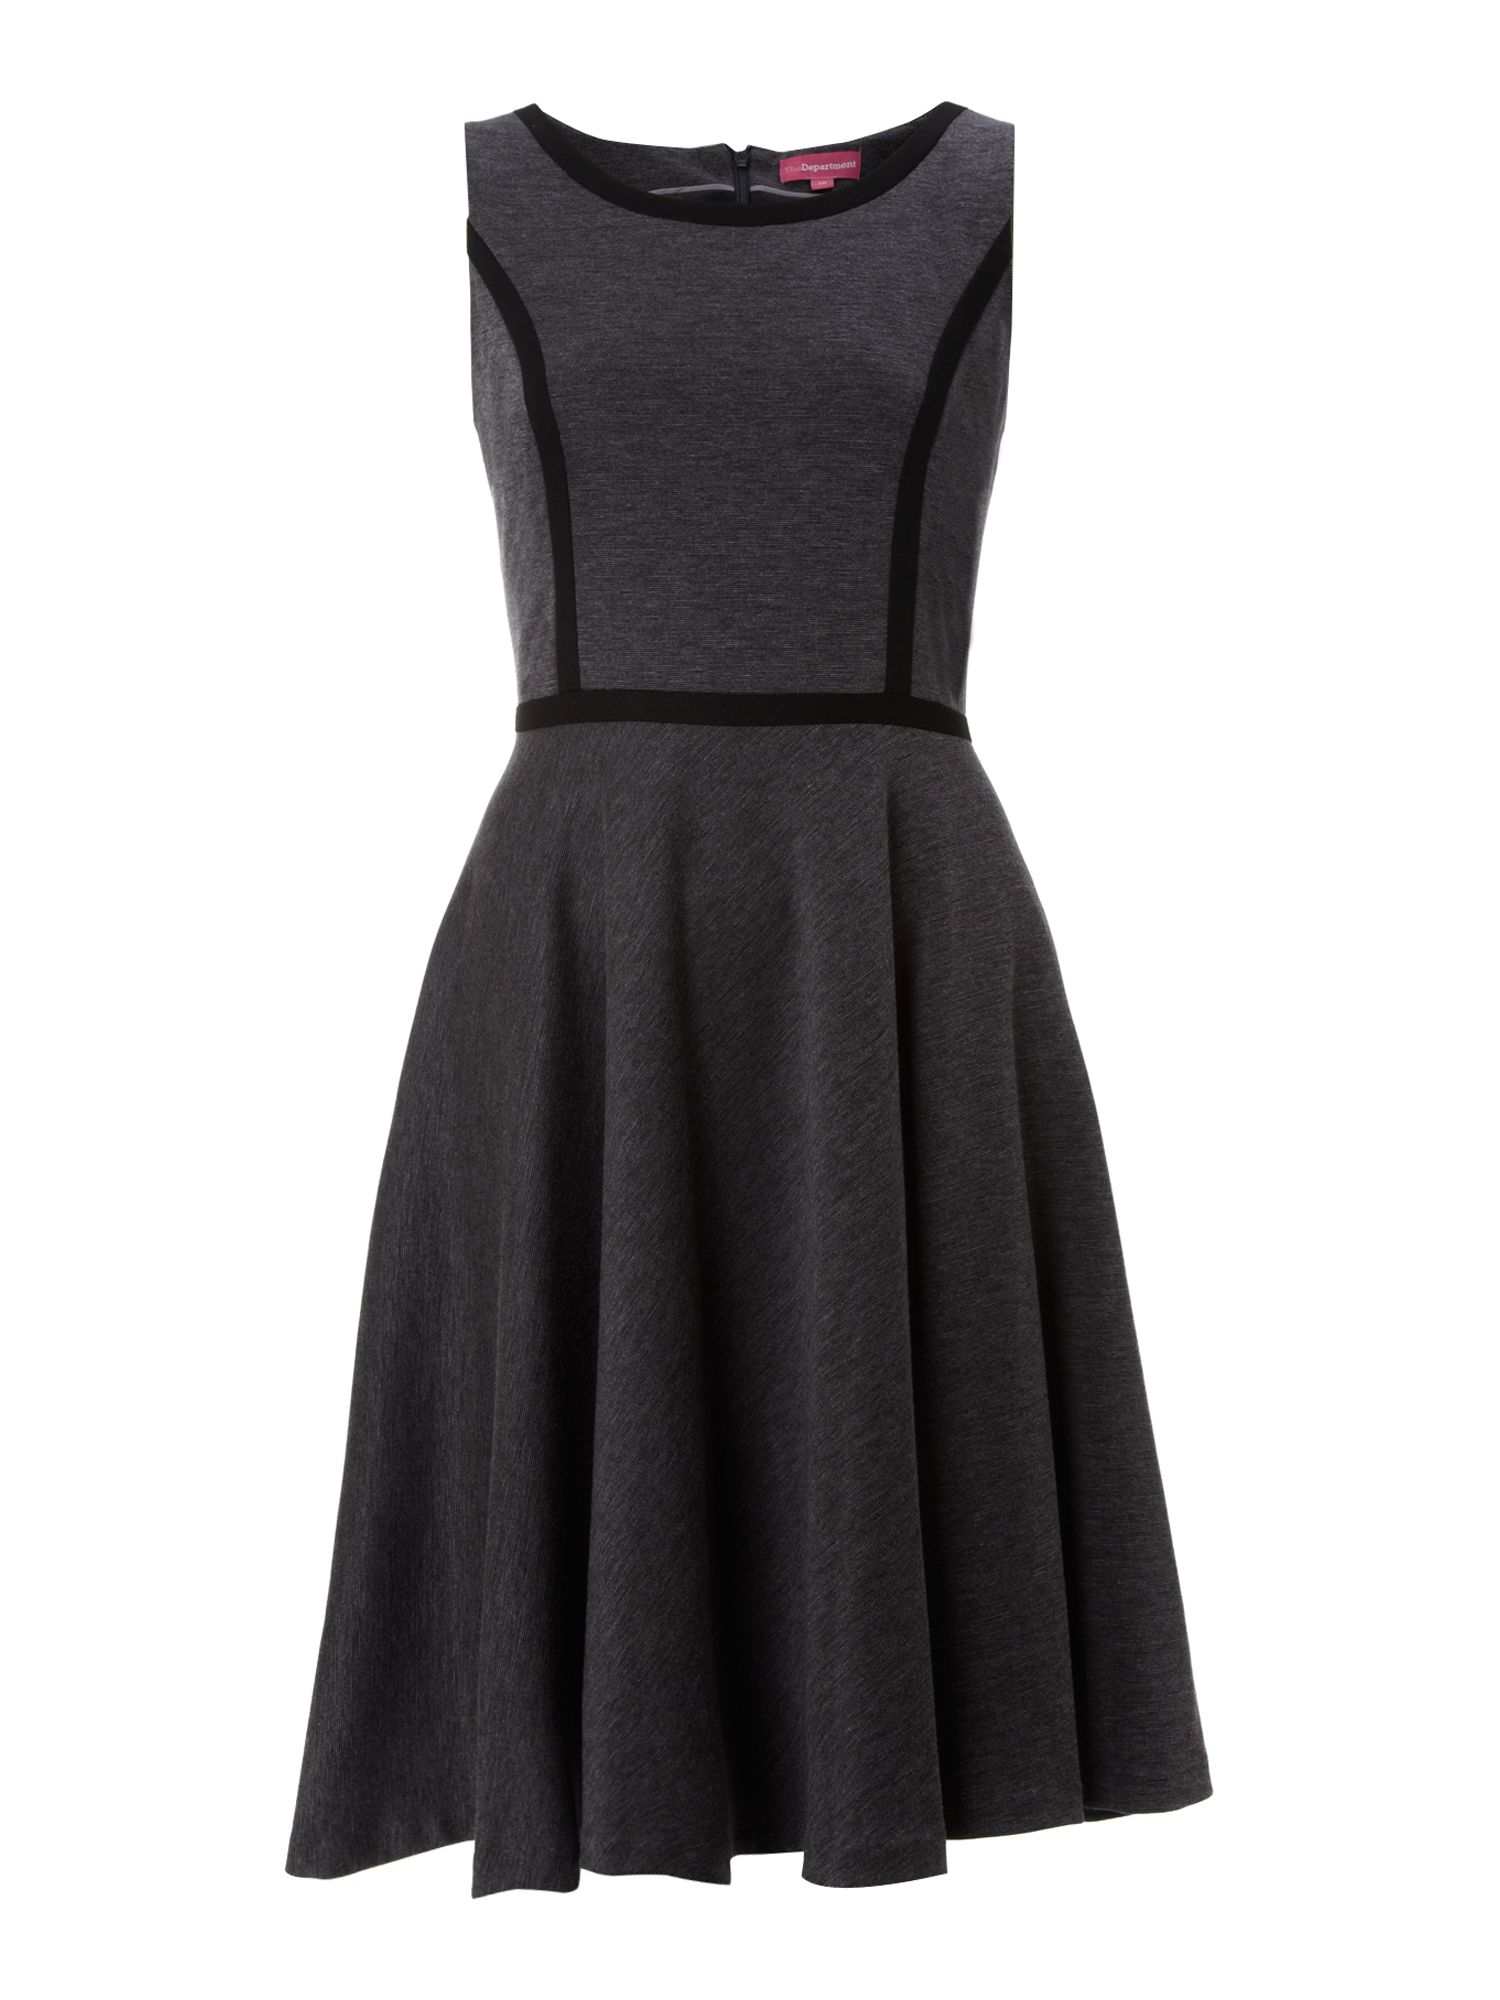 Ponte full skirt dress